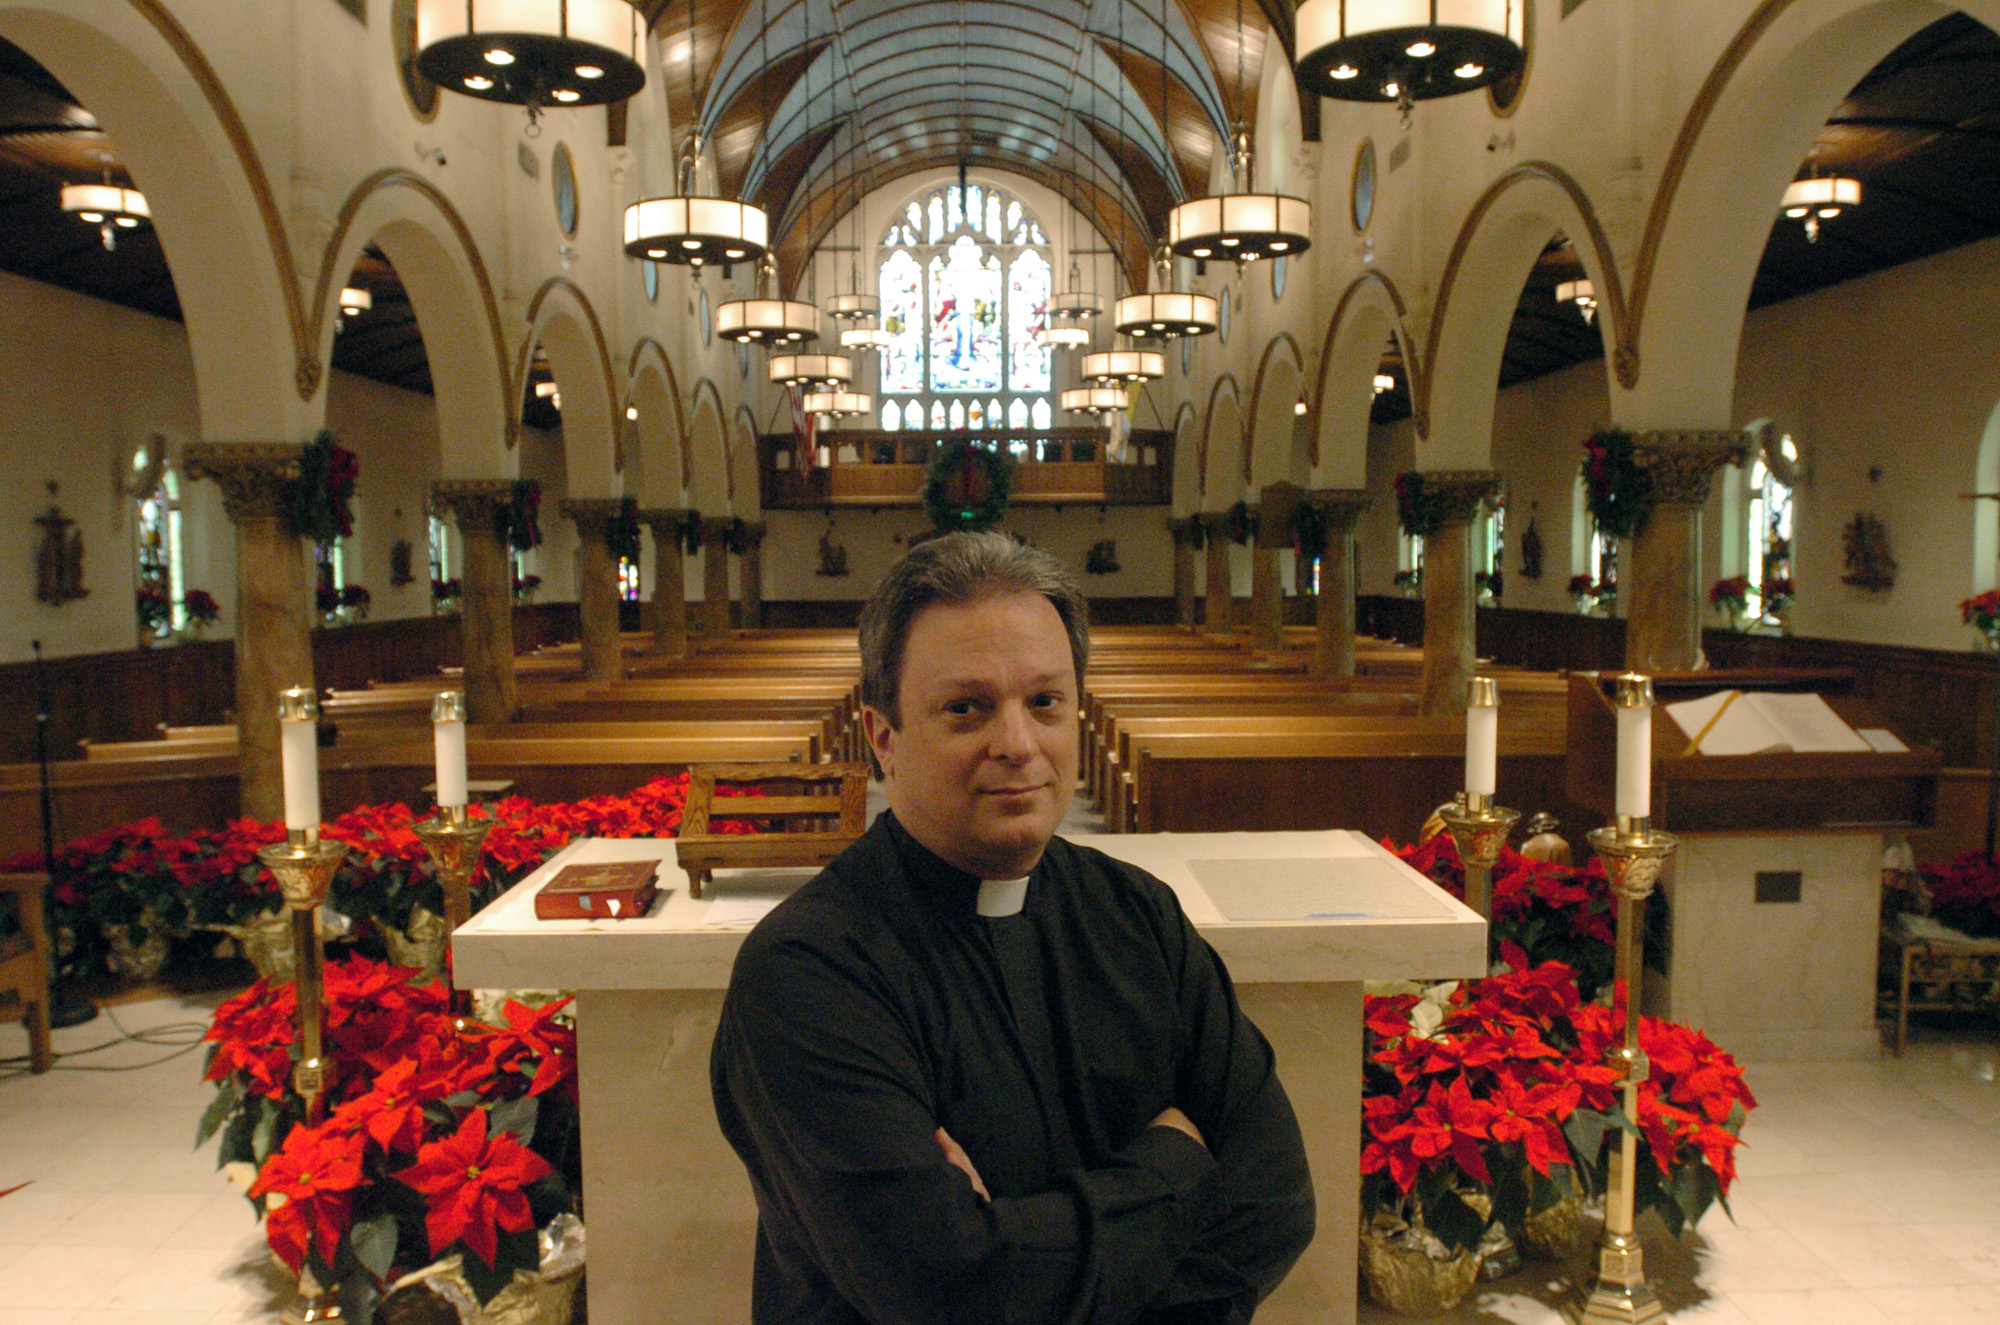 catholic single men in greenwich Faith focused dating and relationships browse profiles & photos of connecticut catholic singles and join catholicmatchcom, the clear leader in online dating for catholics with more catholic singles than any other catholic dating site.